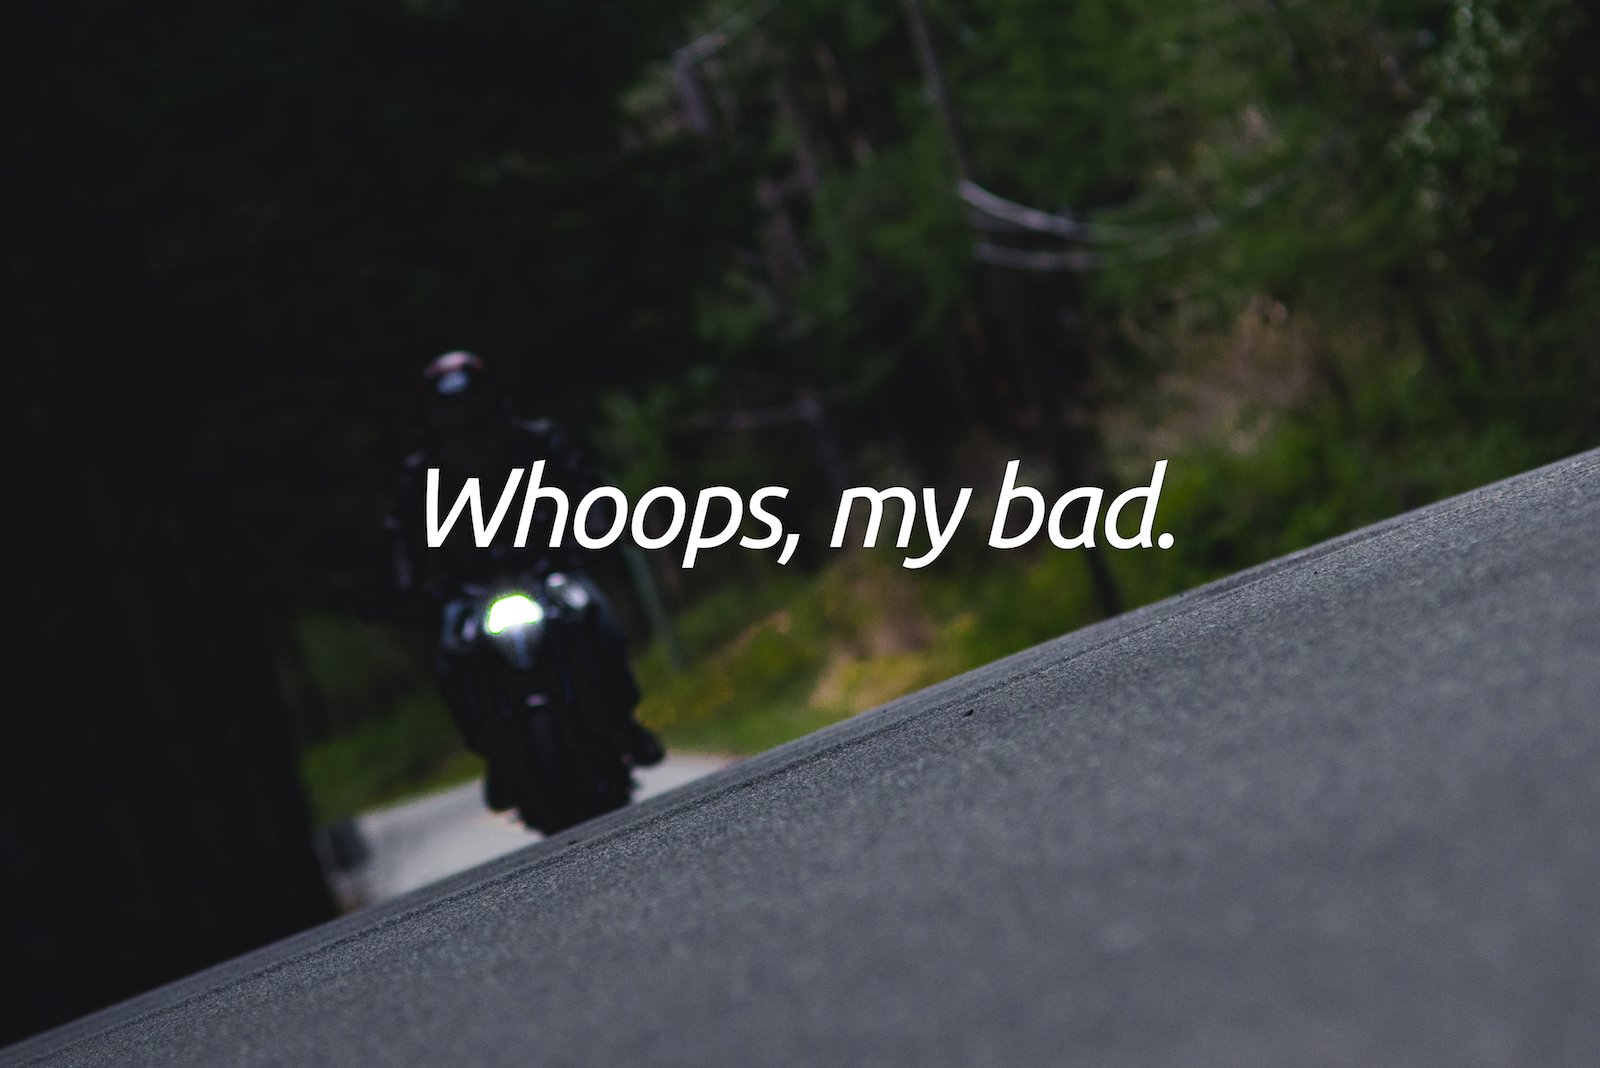 10 Lessons Learned from Botched Motorcycle Photo Shoots